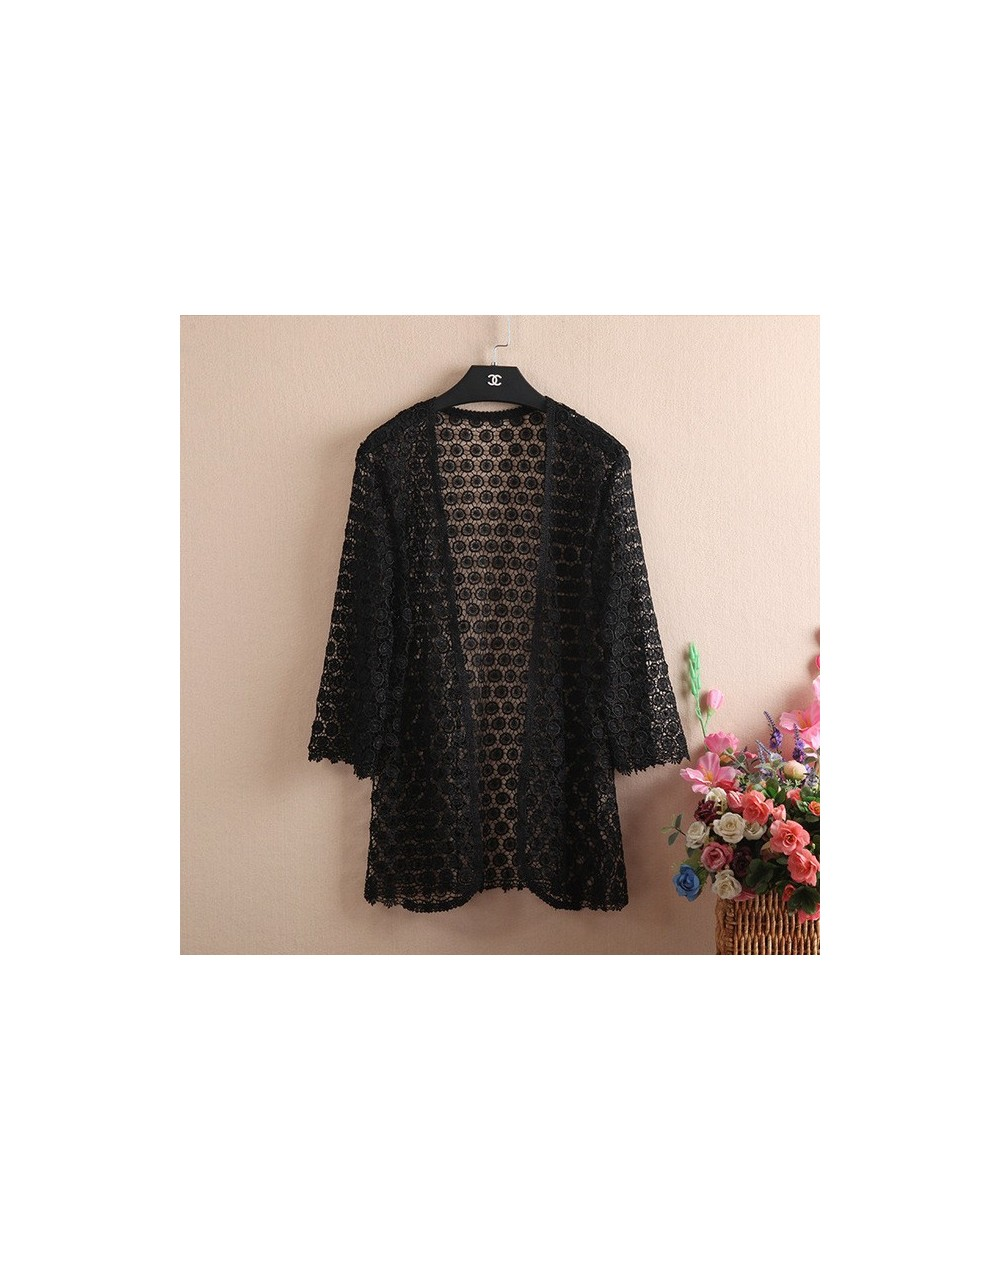 2018 Fashion Middle-Aged Woman Lace Cardigan Crochet Shrug Lace Hollow Out Many Colors Tassel Sweater Cape Cardigan Shurg T2...